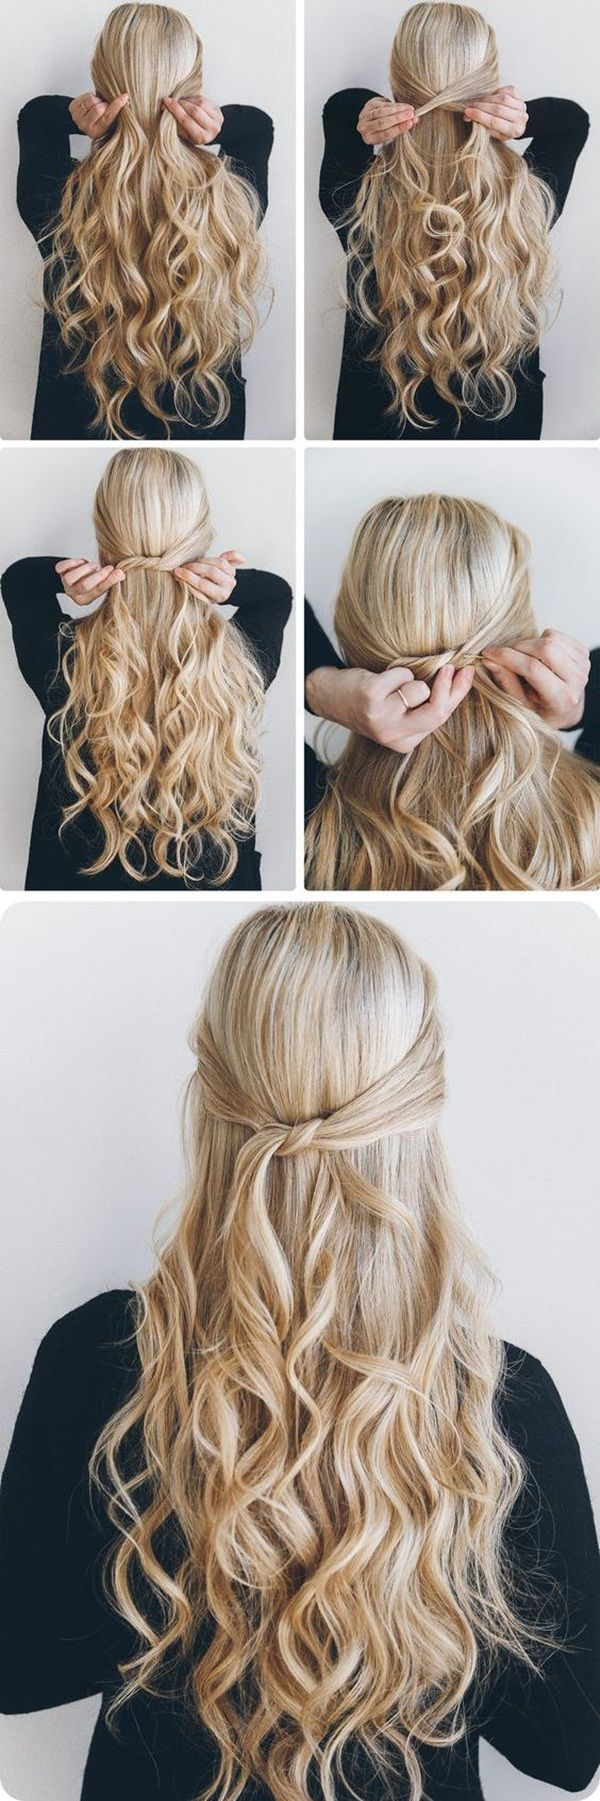 25 best ideas about Easy school hairstyles on Pinterest